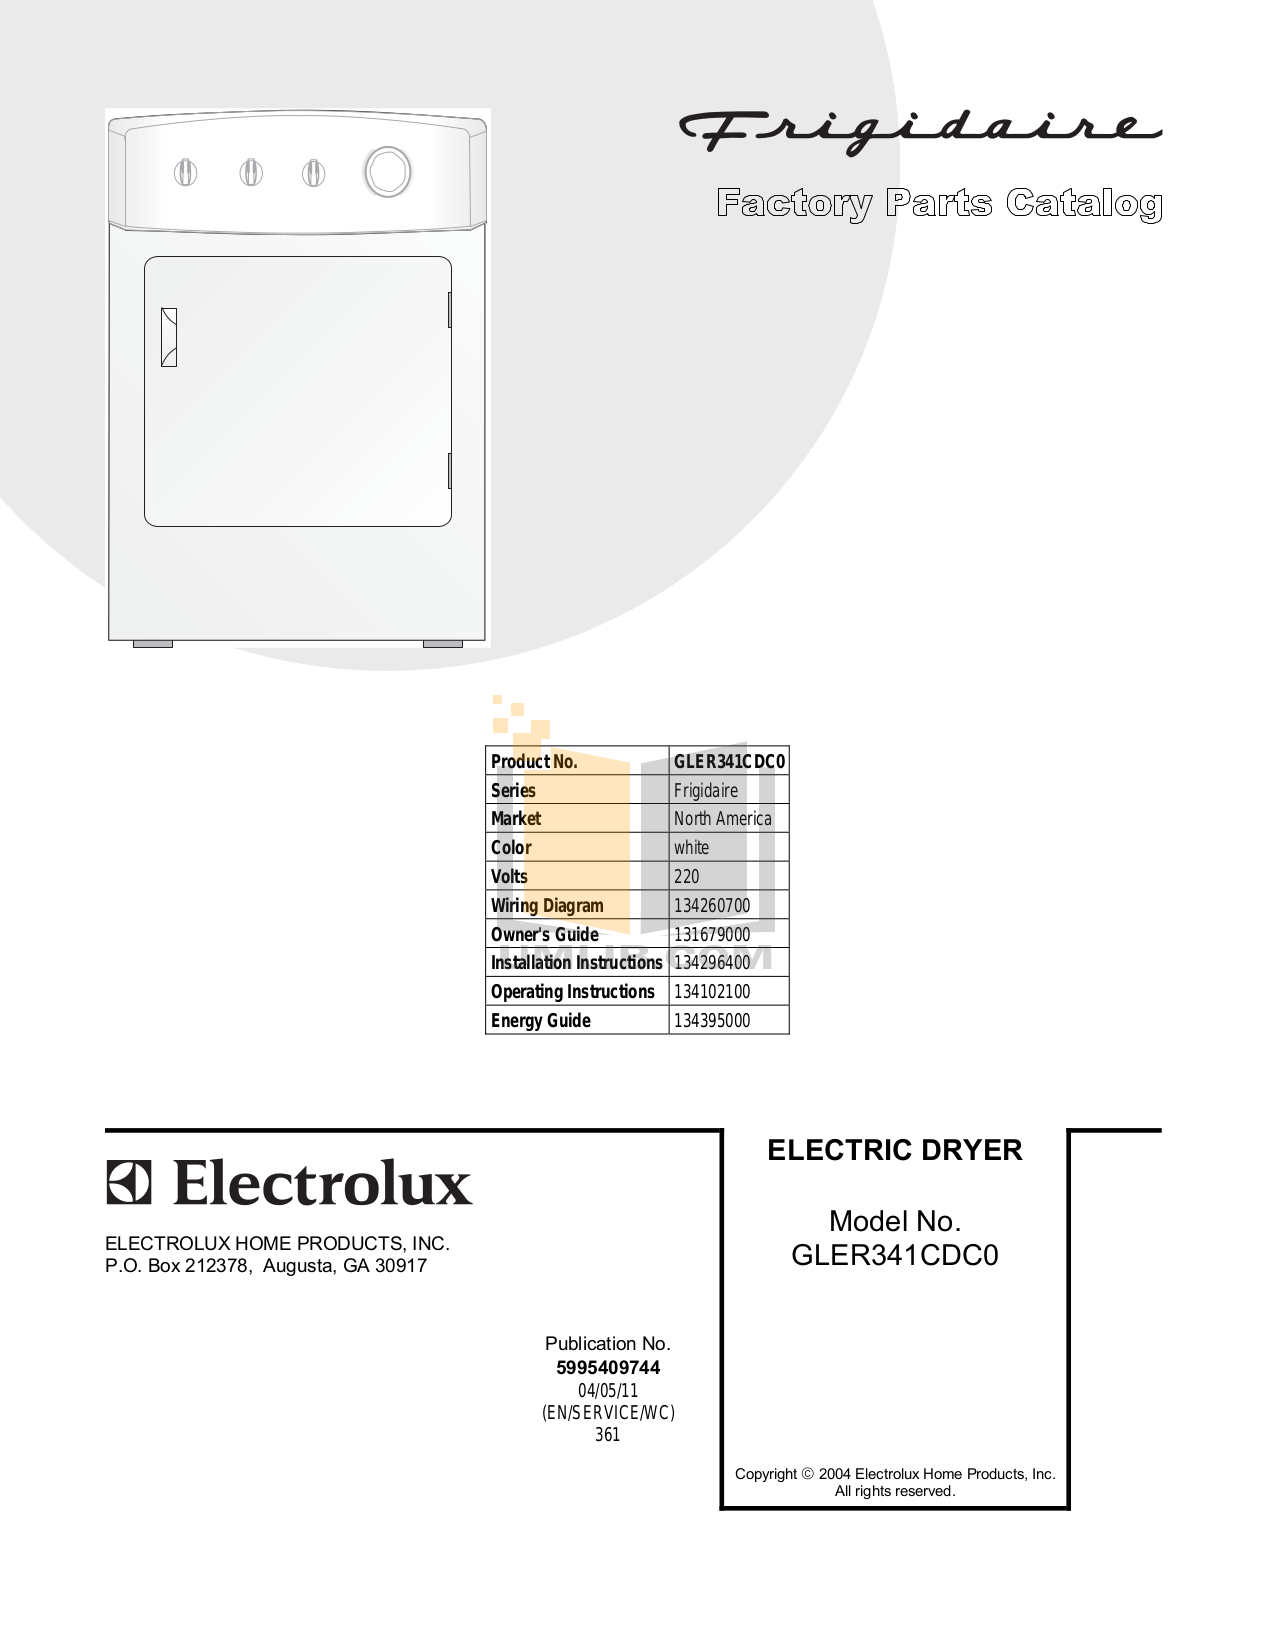 pdf for Frigidaire Dryer GLER341CDC0 manual